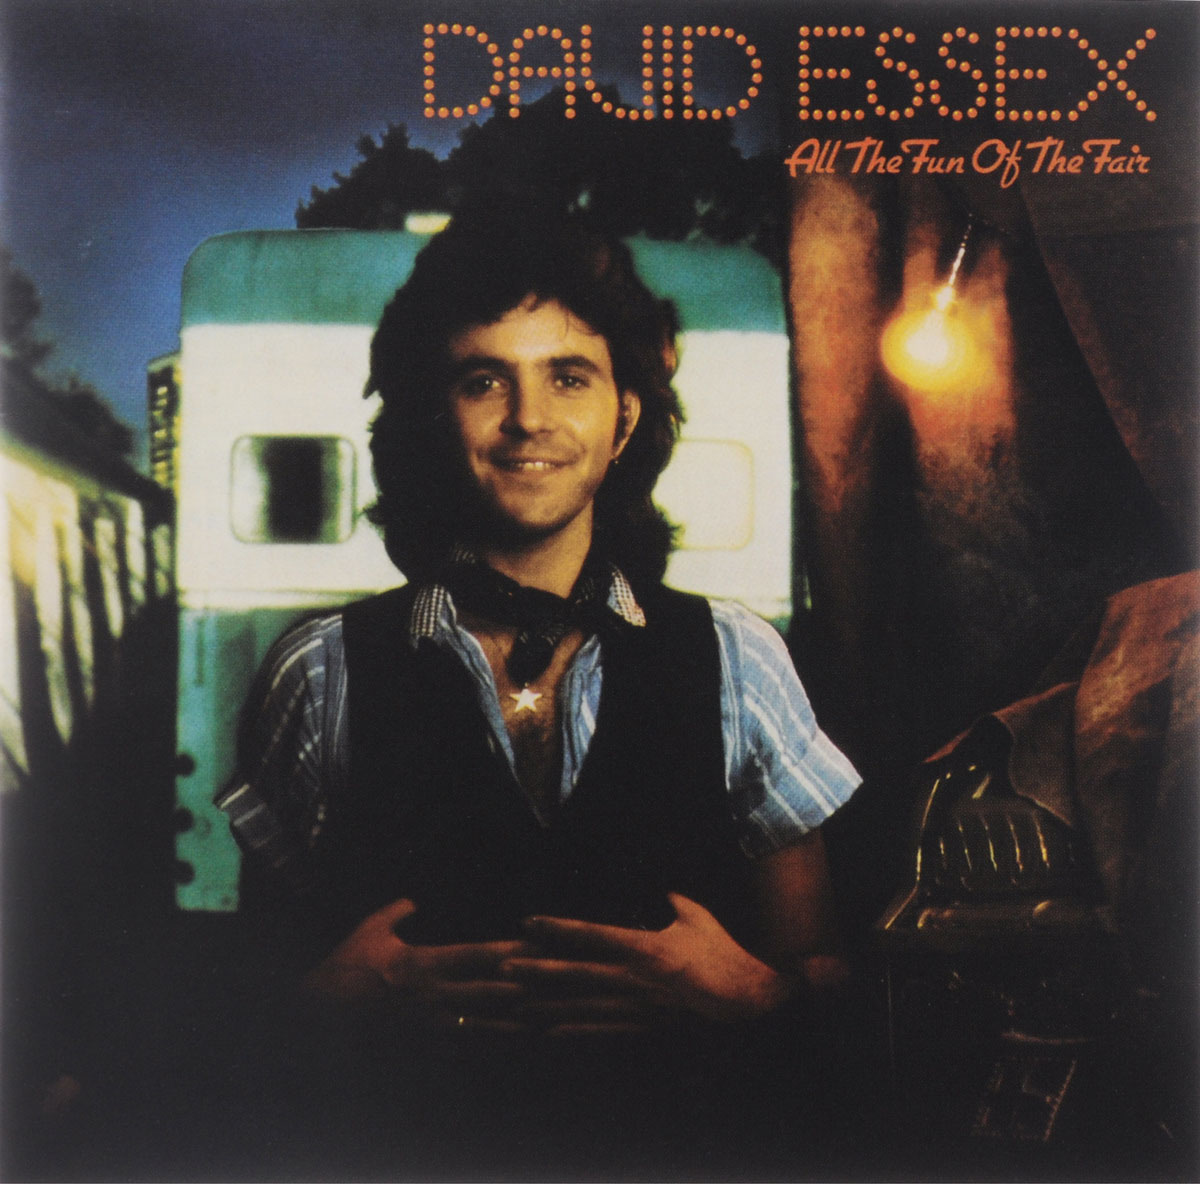 Дэвид Эссекс David Essex. All The Fun Of The Fair полотенце для хамама zoe quelle quelle 523811